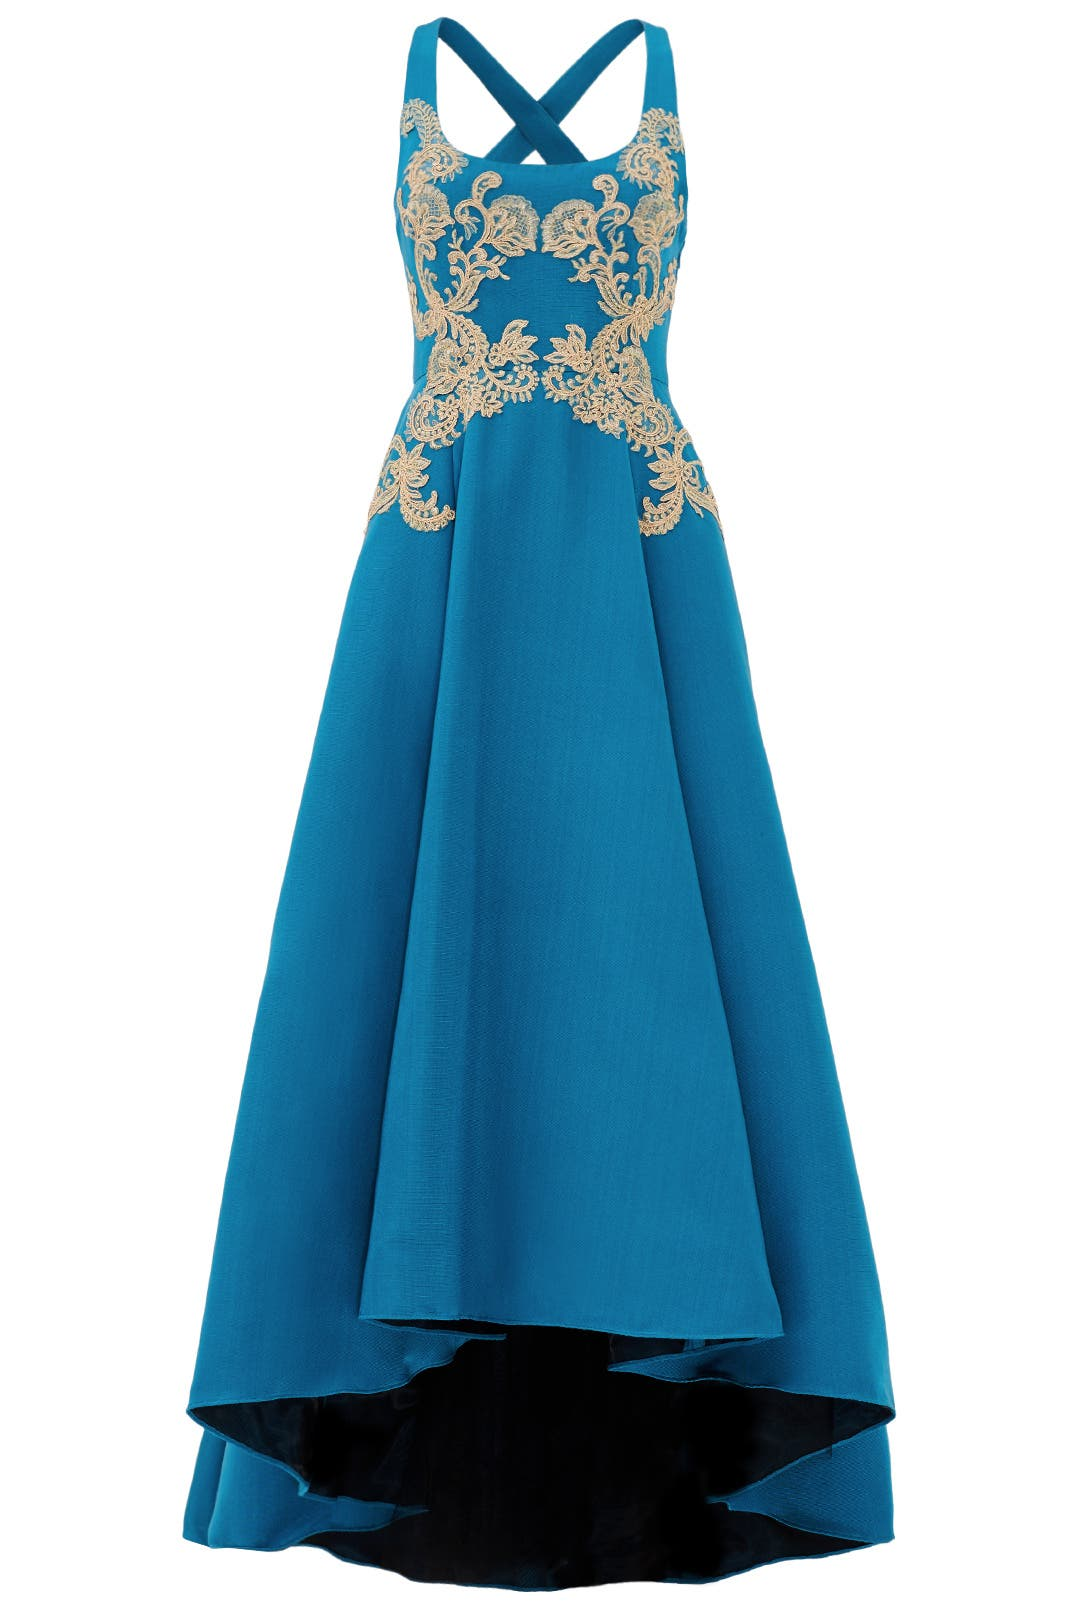 Gilded Royal Teal Gown by Marchesa Notte for $97 | Rent the Runway